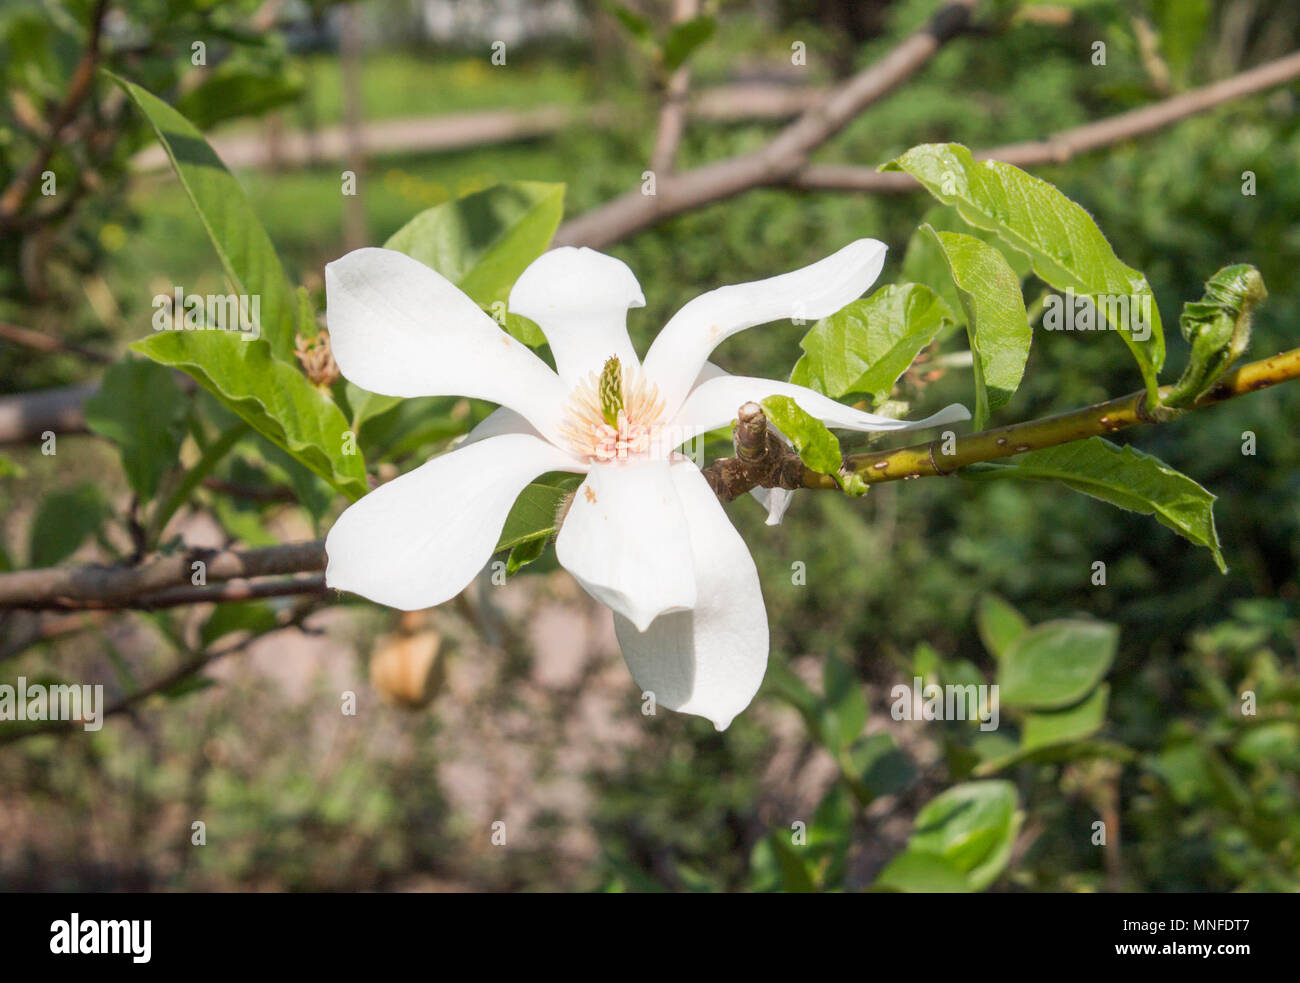 Magnolia White With Yellow Middle Flower Close Up Grows On A Tree